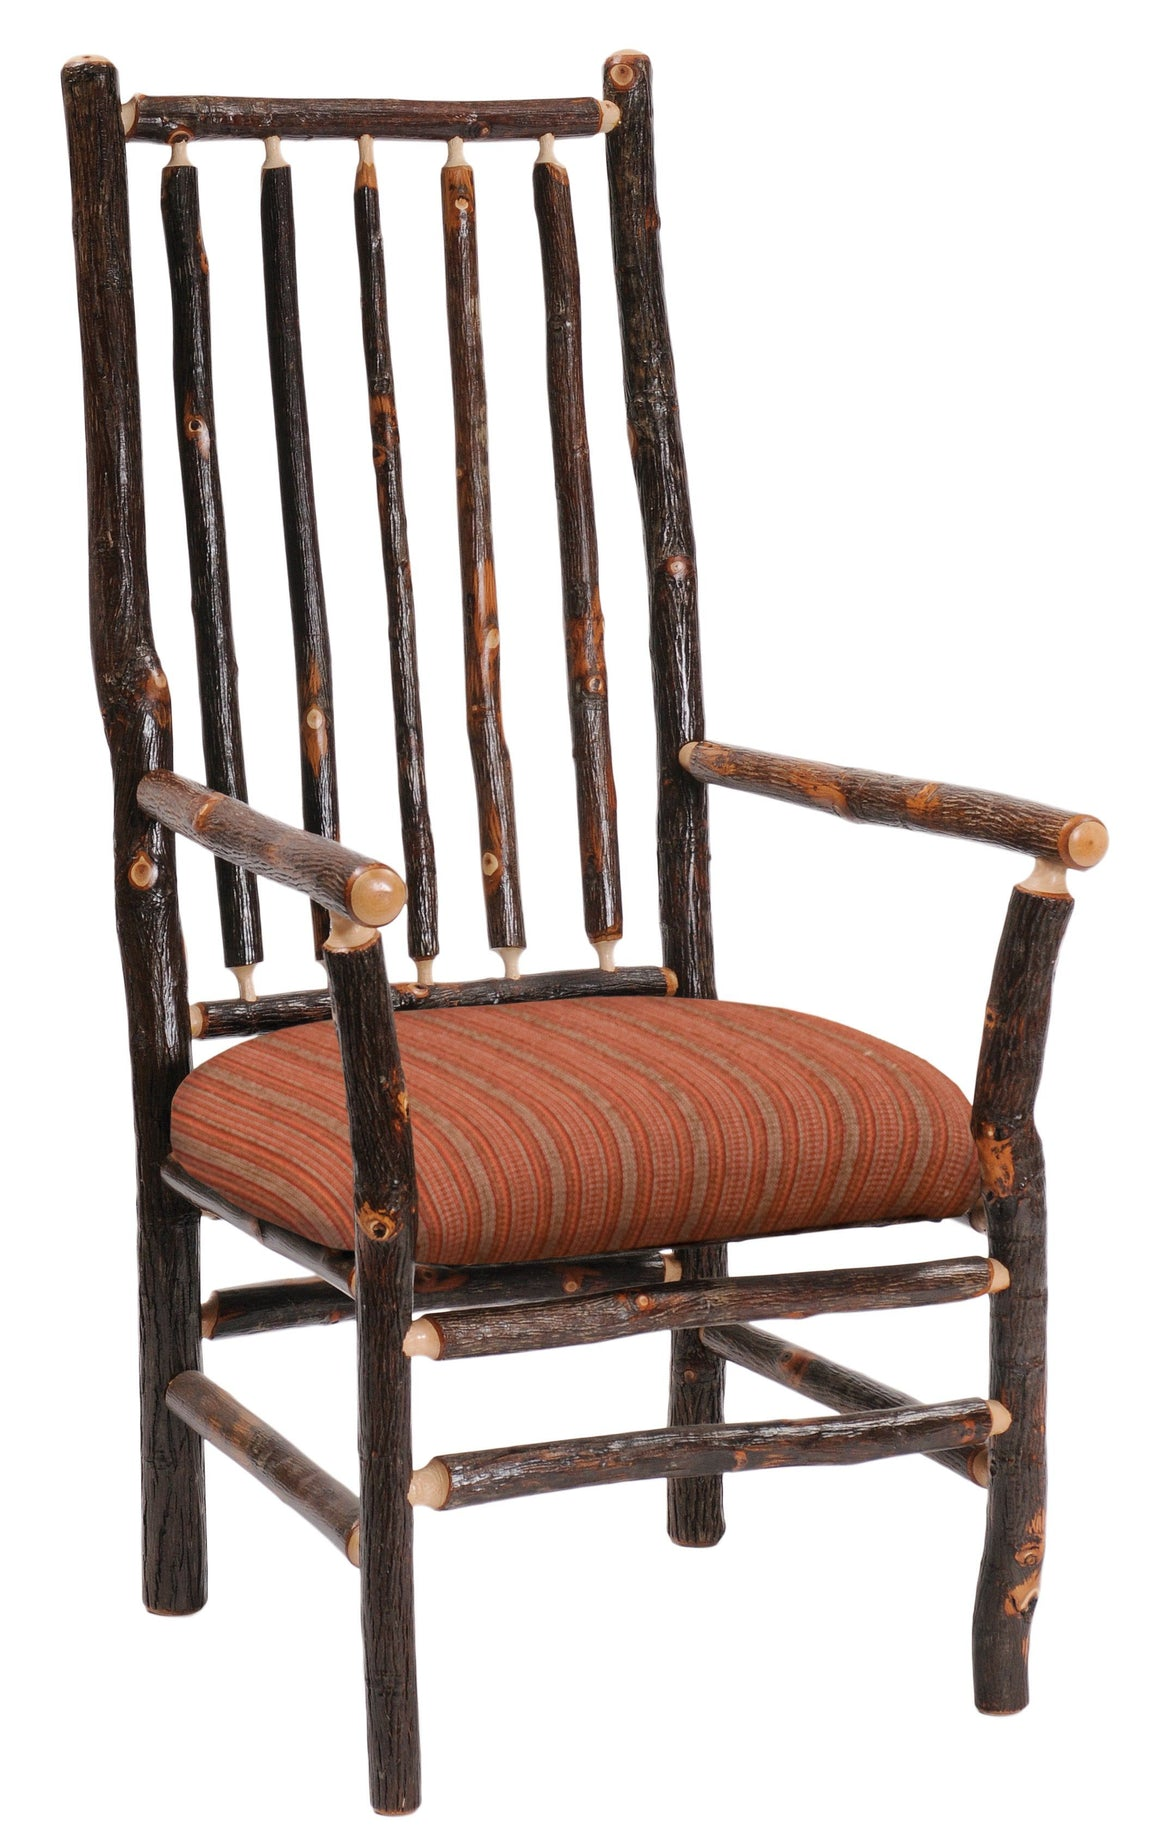 Natural Hickory Log High-back Spoke Arm Chair - Upholstered Seat-Rustic Deco Incorporated